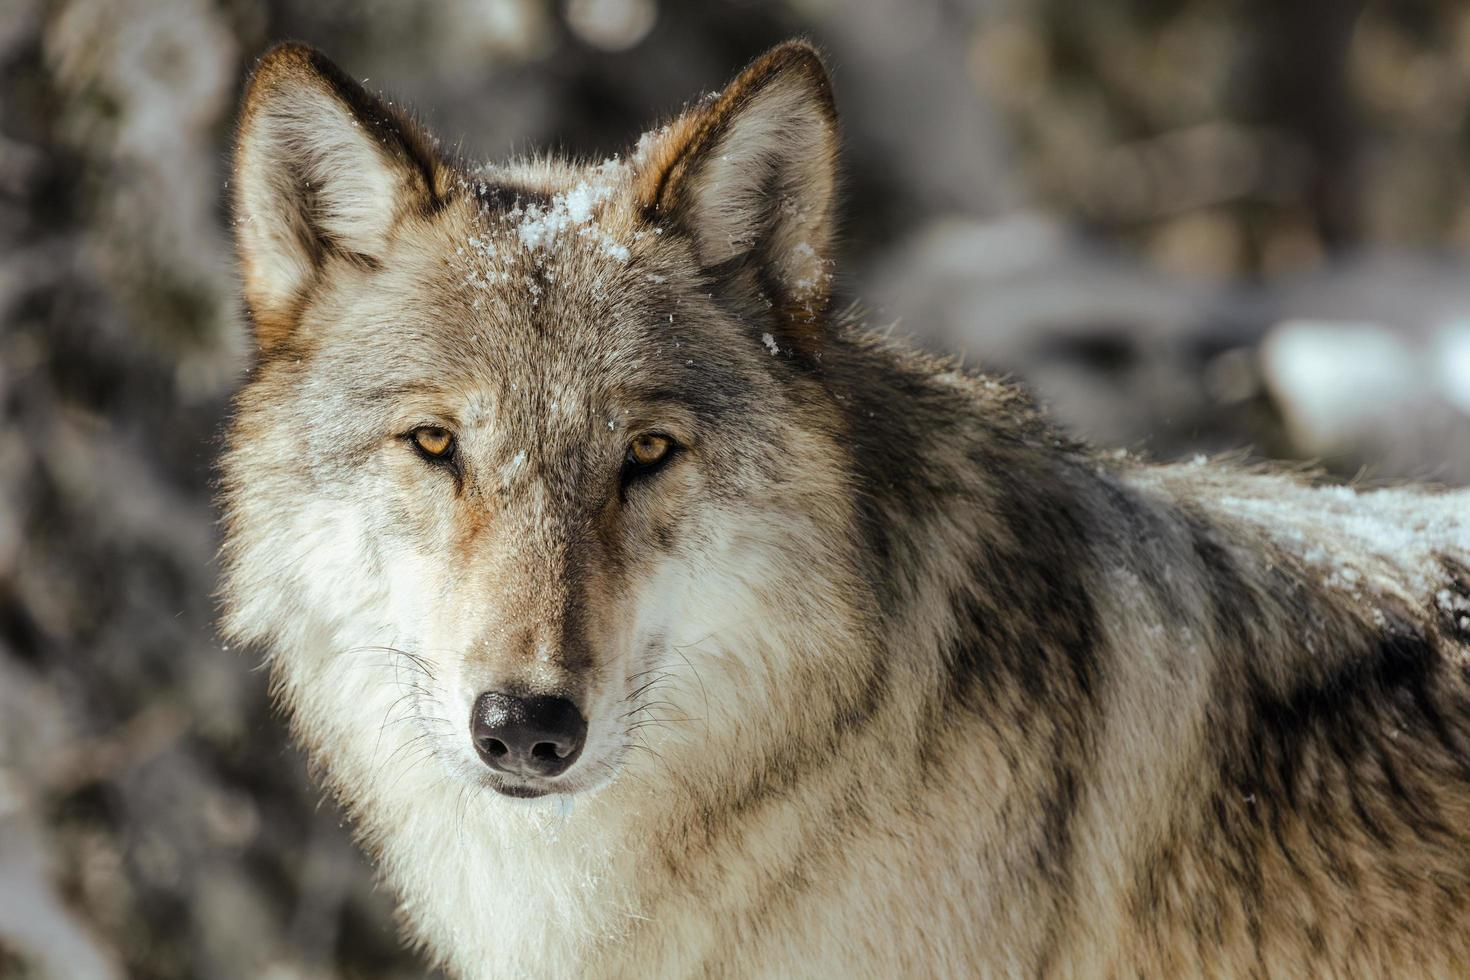 Close-up of a wolf in nature photo